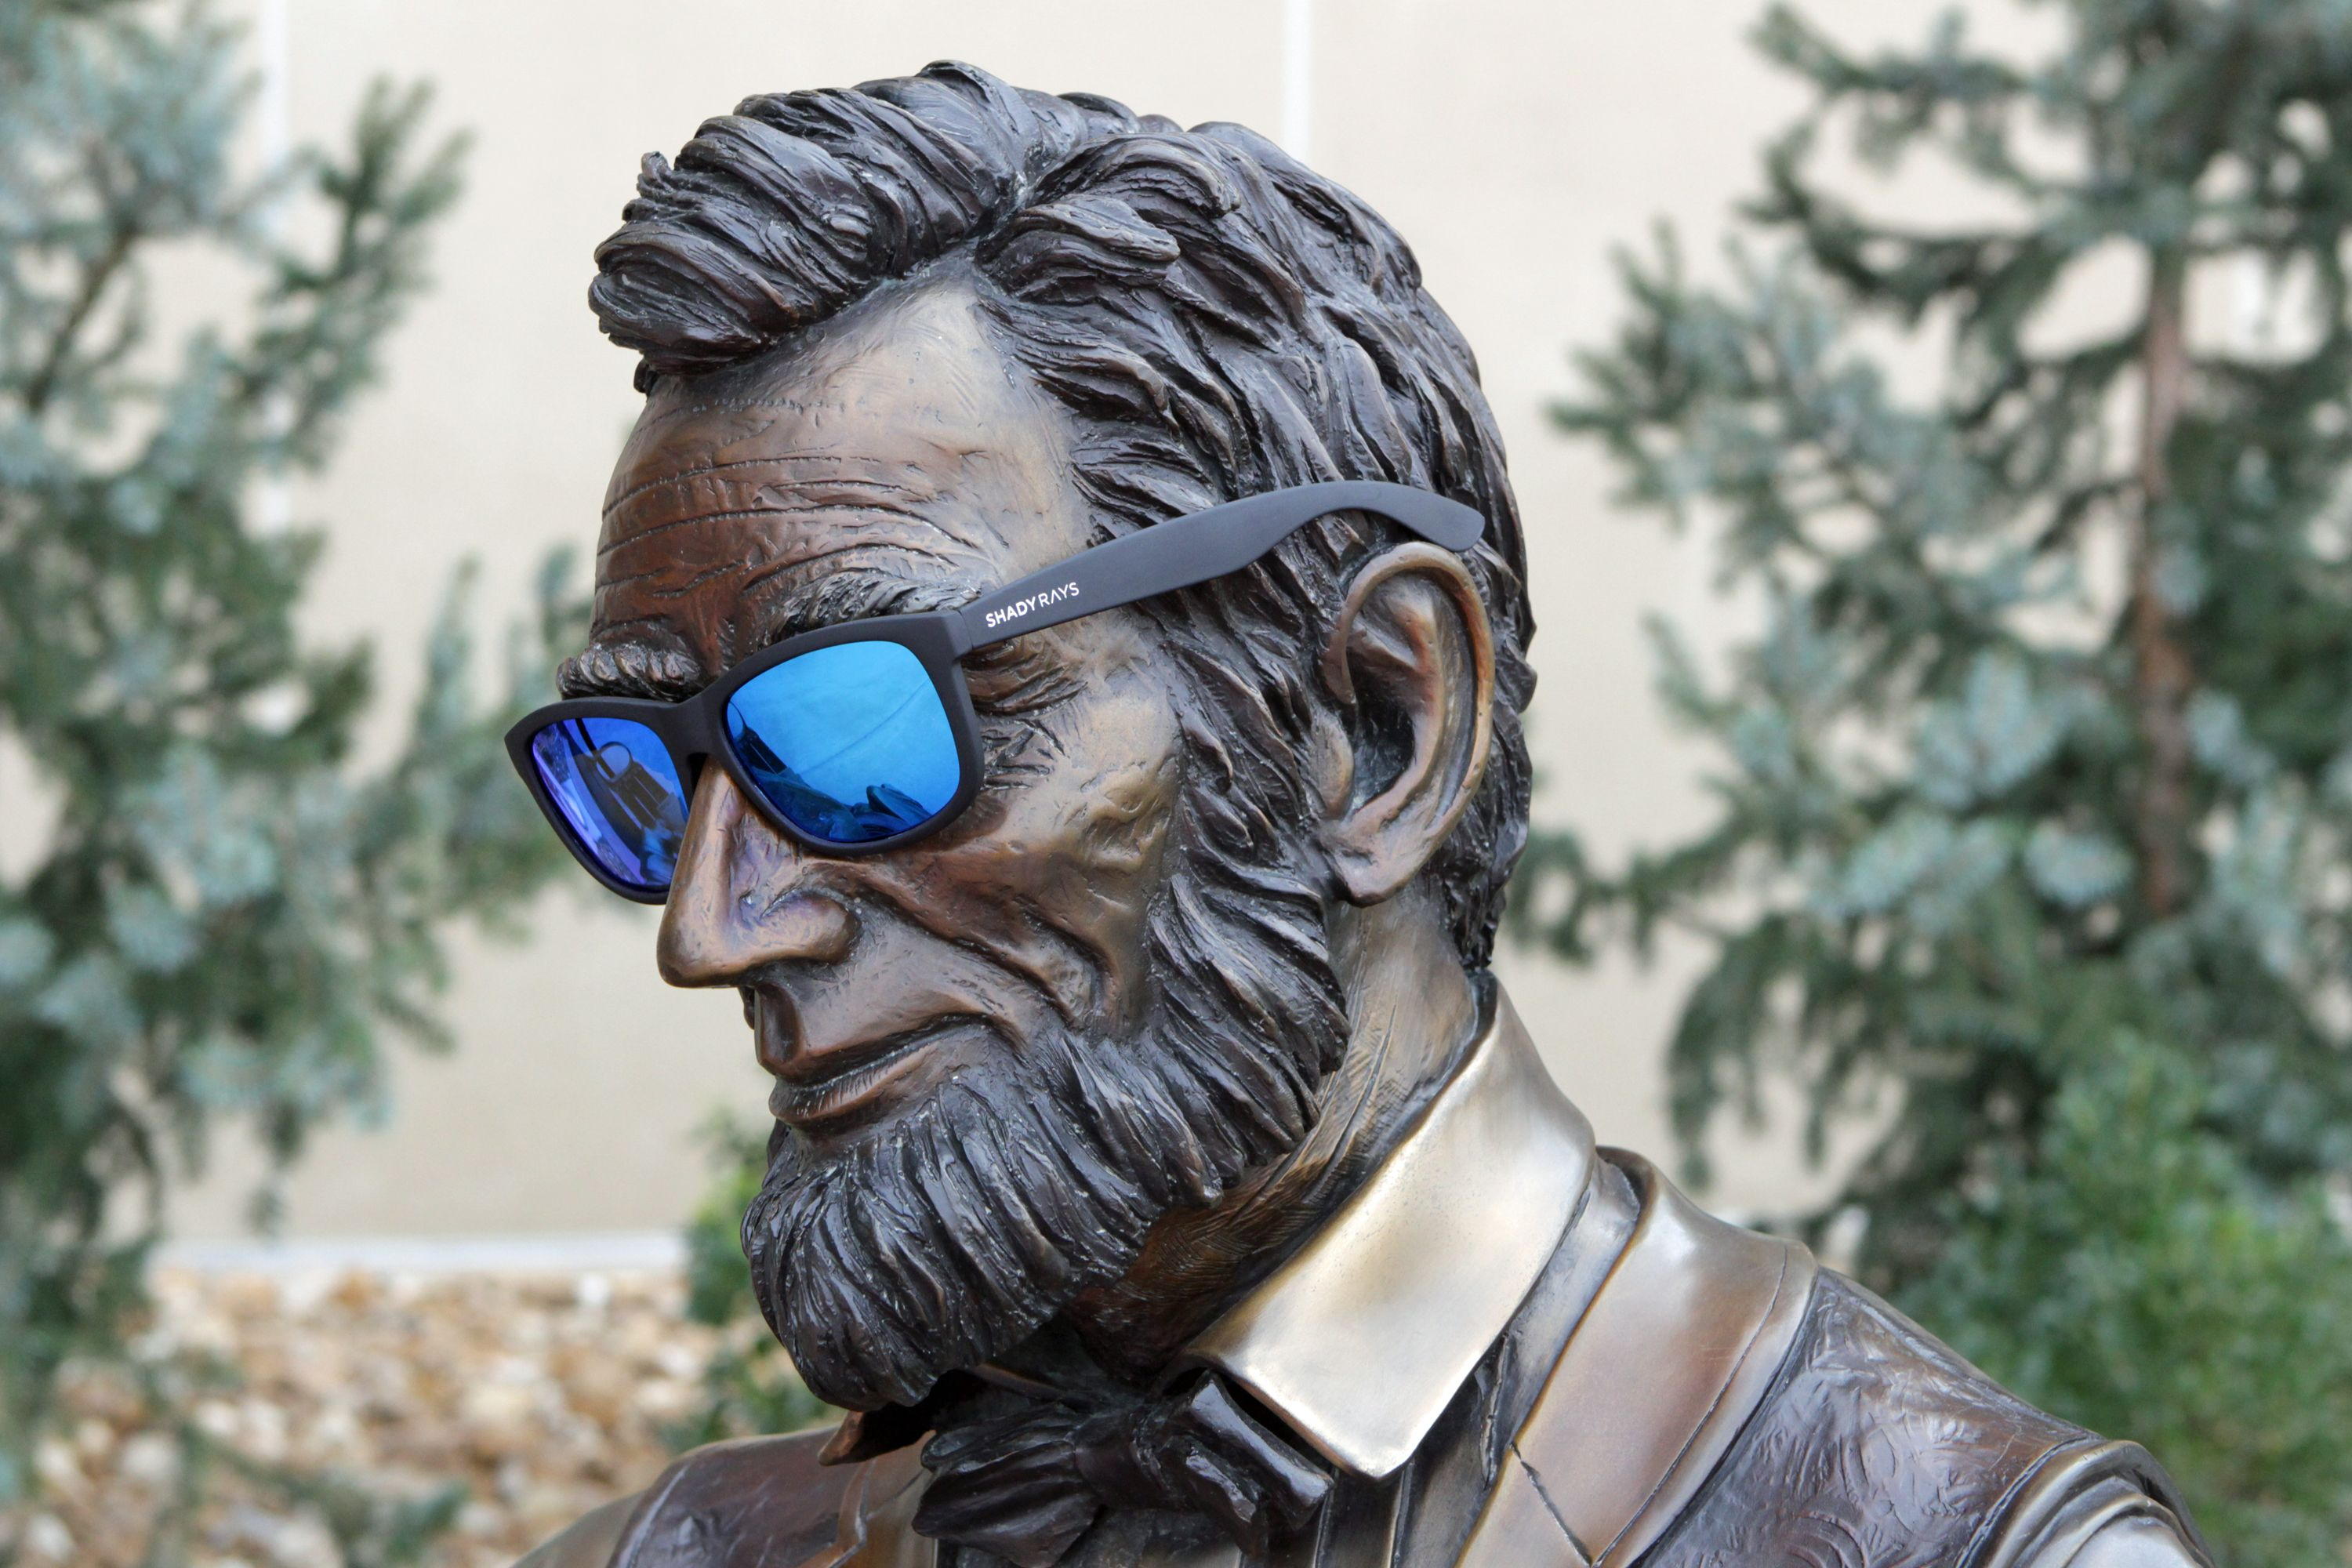 b612756eb1 Did you know that Abe Lincoln wore Shady Rays Sunglasses. These great  shades have polarized lenses and will be replaced for free if lost or  stolen.